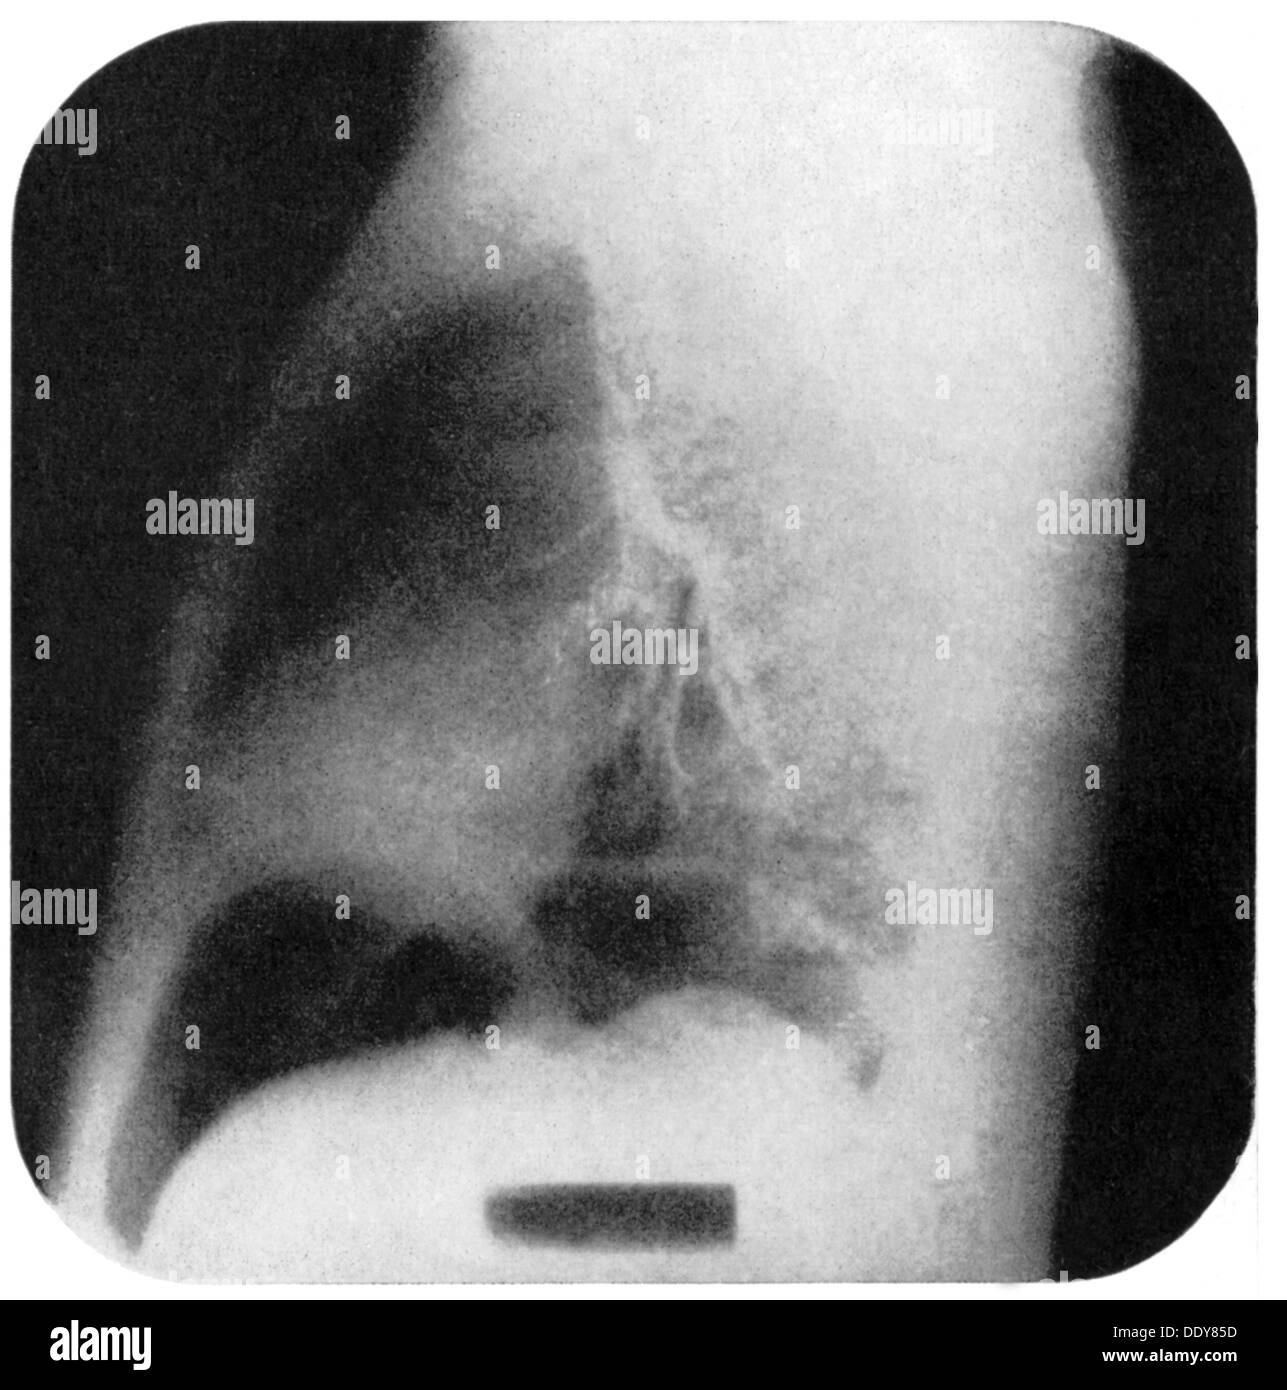 medicine, irradiation / X-ray / measurement, abdominal cavity and thorax, x-ray cinematography, 20th century, 20th century, X-ray, X-raying, angiography, pneumography, chest, thorax, rib cage, ribcage, thoraxes, respiratory system, respiratory systems, abdominal cavity, radiograph, X-ray picture, X-ray image, radiographs, x-ray cinematography, medicine, medicines, historic, historical, Additional-Rights-Clearences-NA - Stock Image